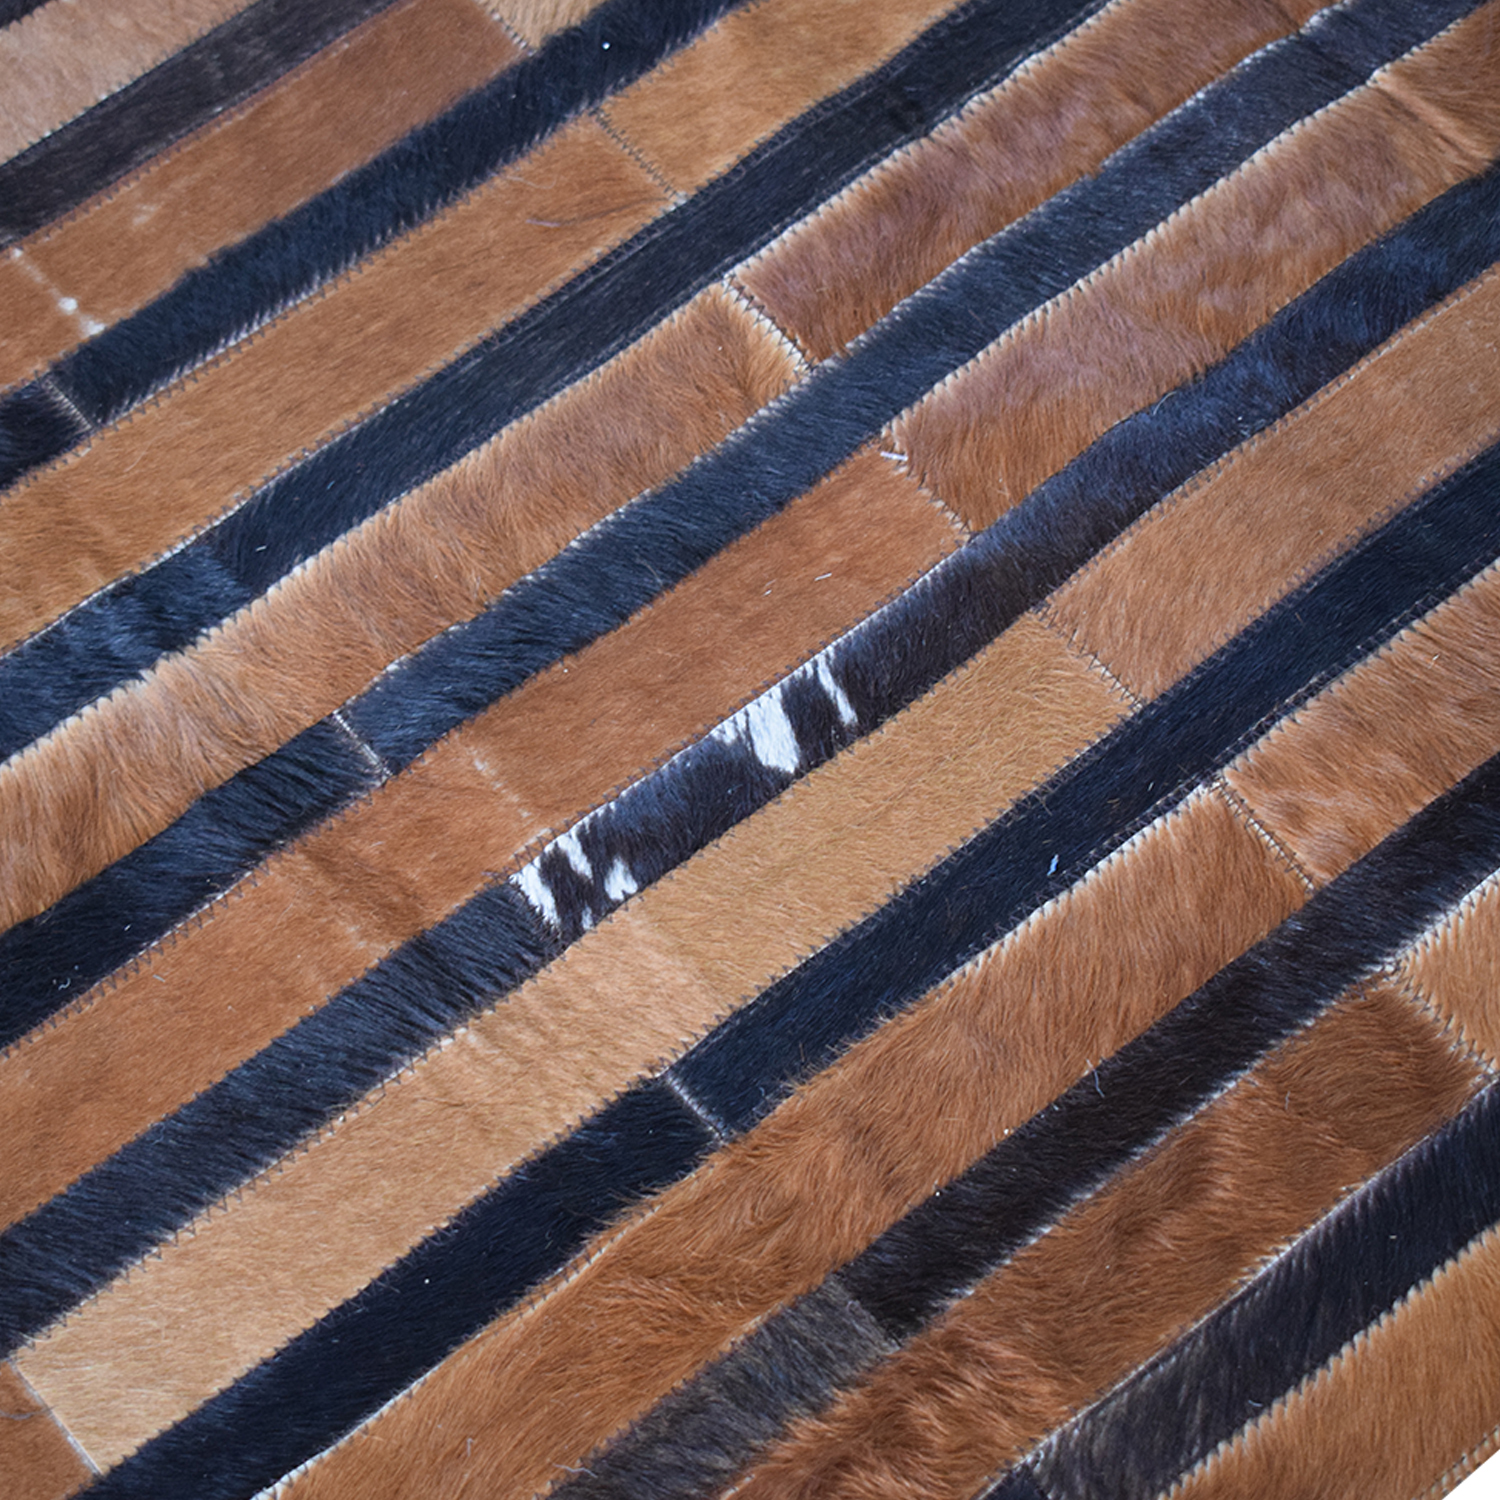 ABC Carpet & Home ABC Carpet & Home Striped Rug Decor